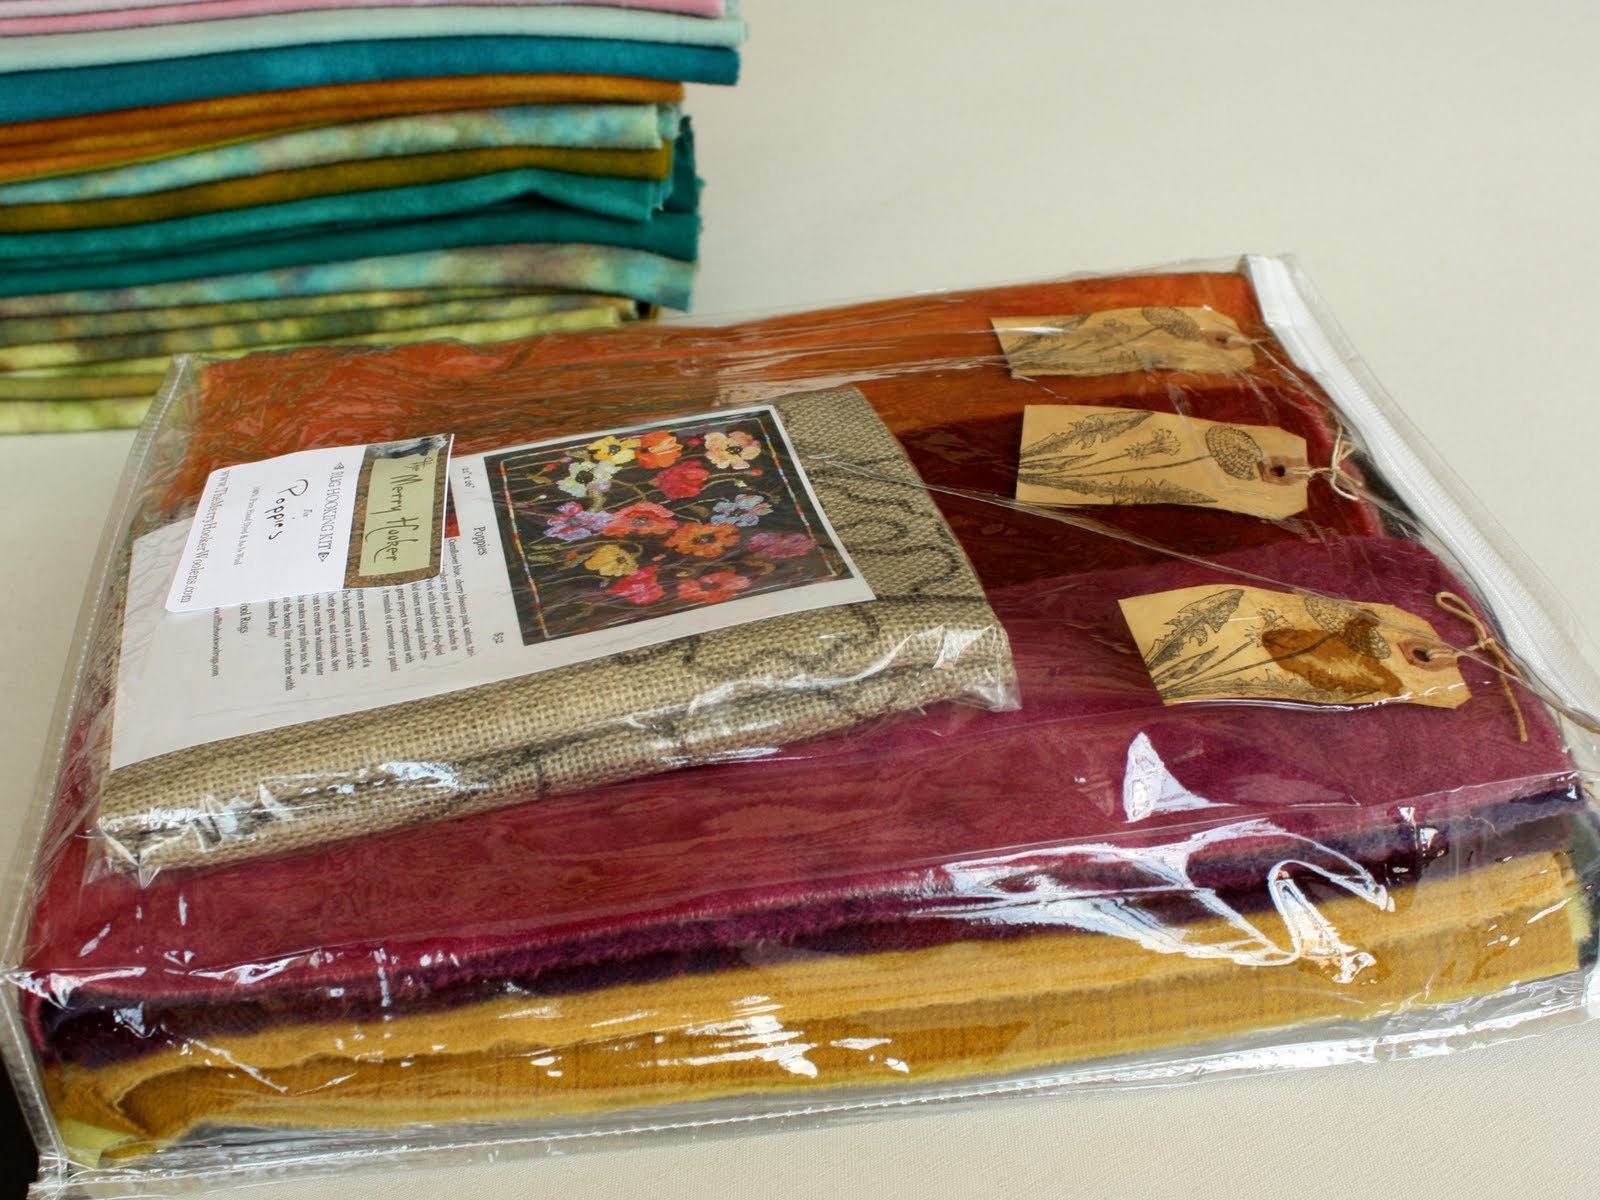 Charming Primitive Rug Hooking Kits U0026 Patterns From Lacey Jane Primitives. All  Packaged Up And Ready To Send Off To The Hooker Who Will Turn This Into